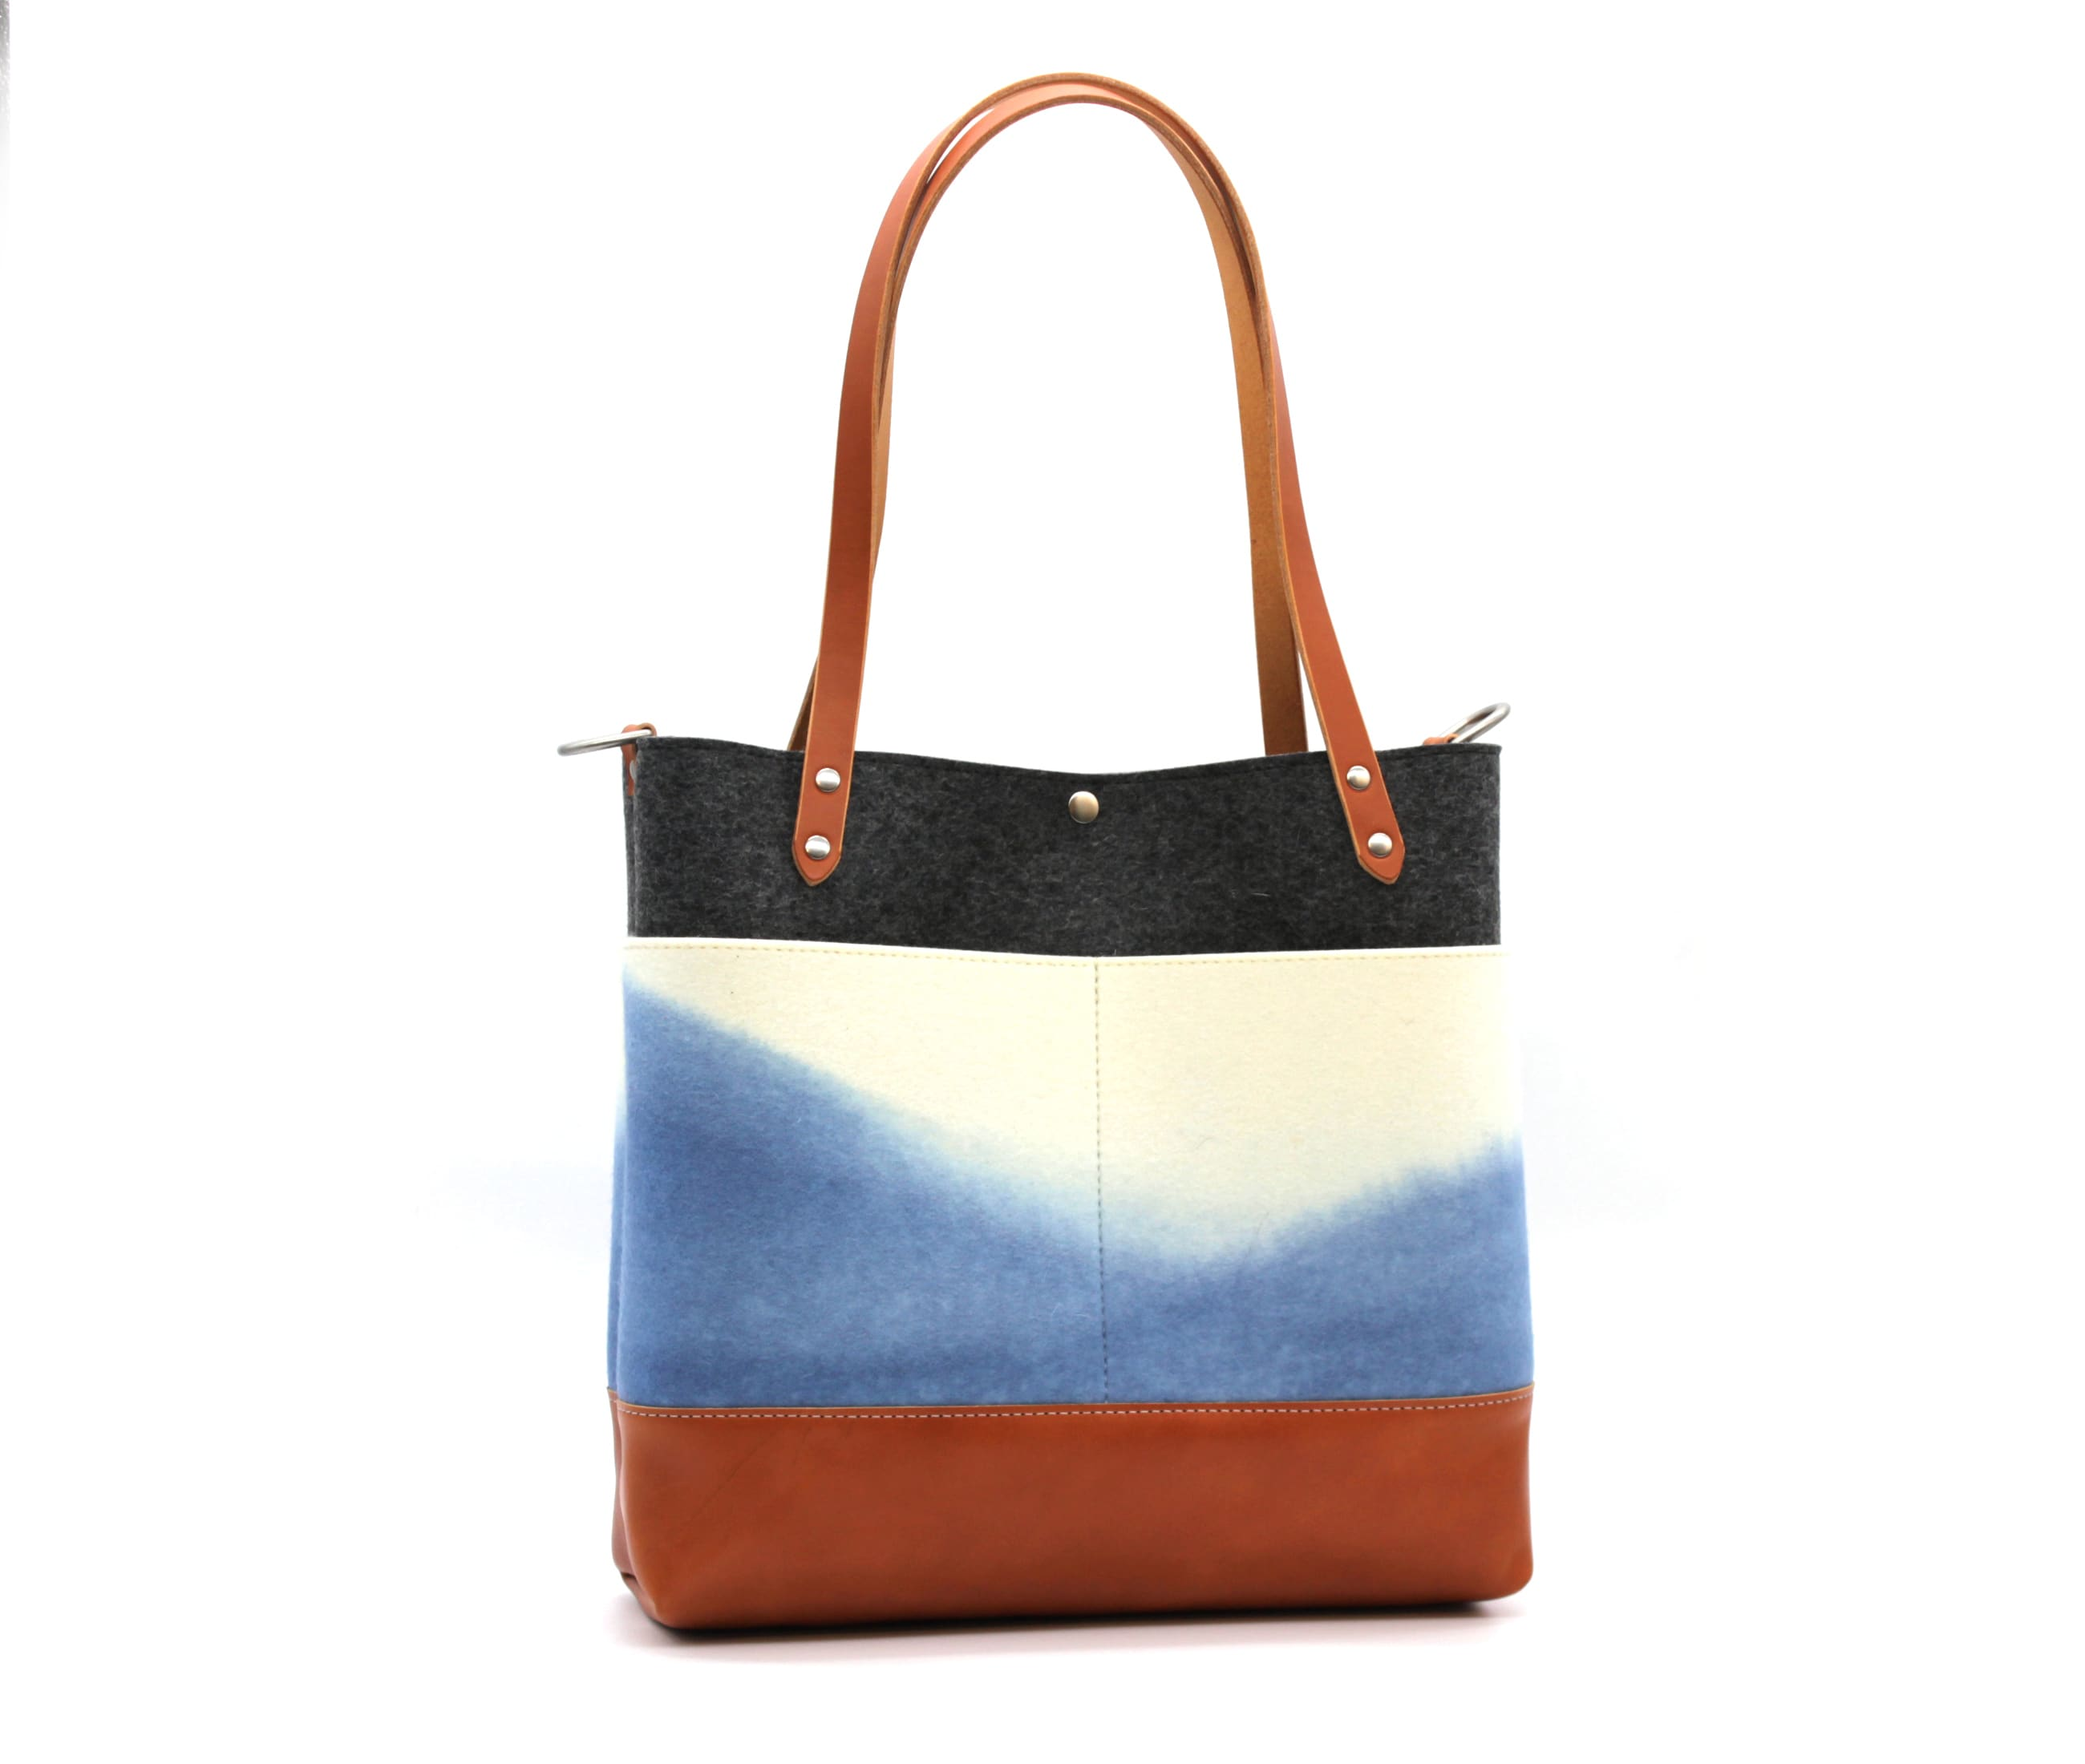 /az0067015-01_brcd8u.jpg view of the Medium Felt Tote / Indigo by Azellaz